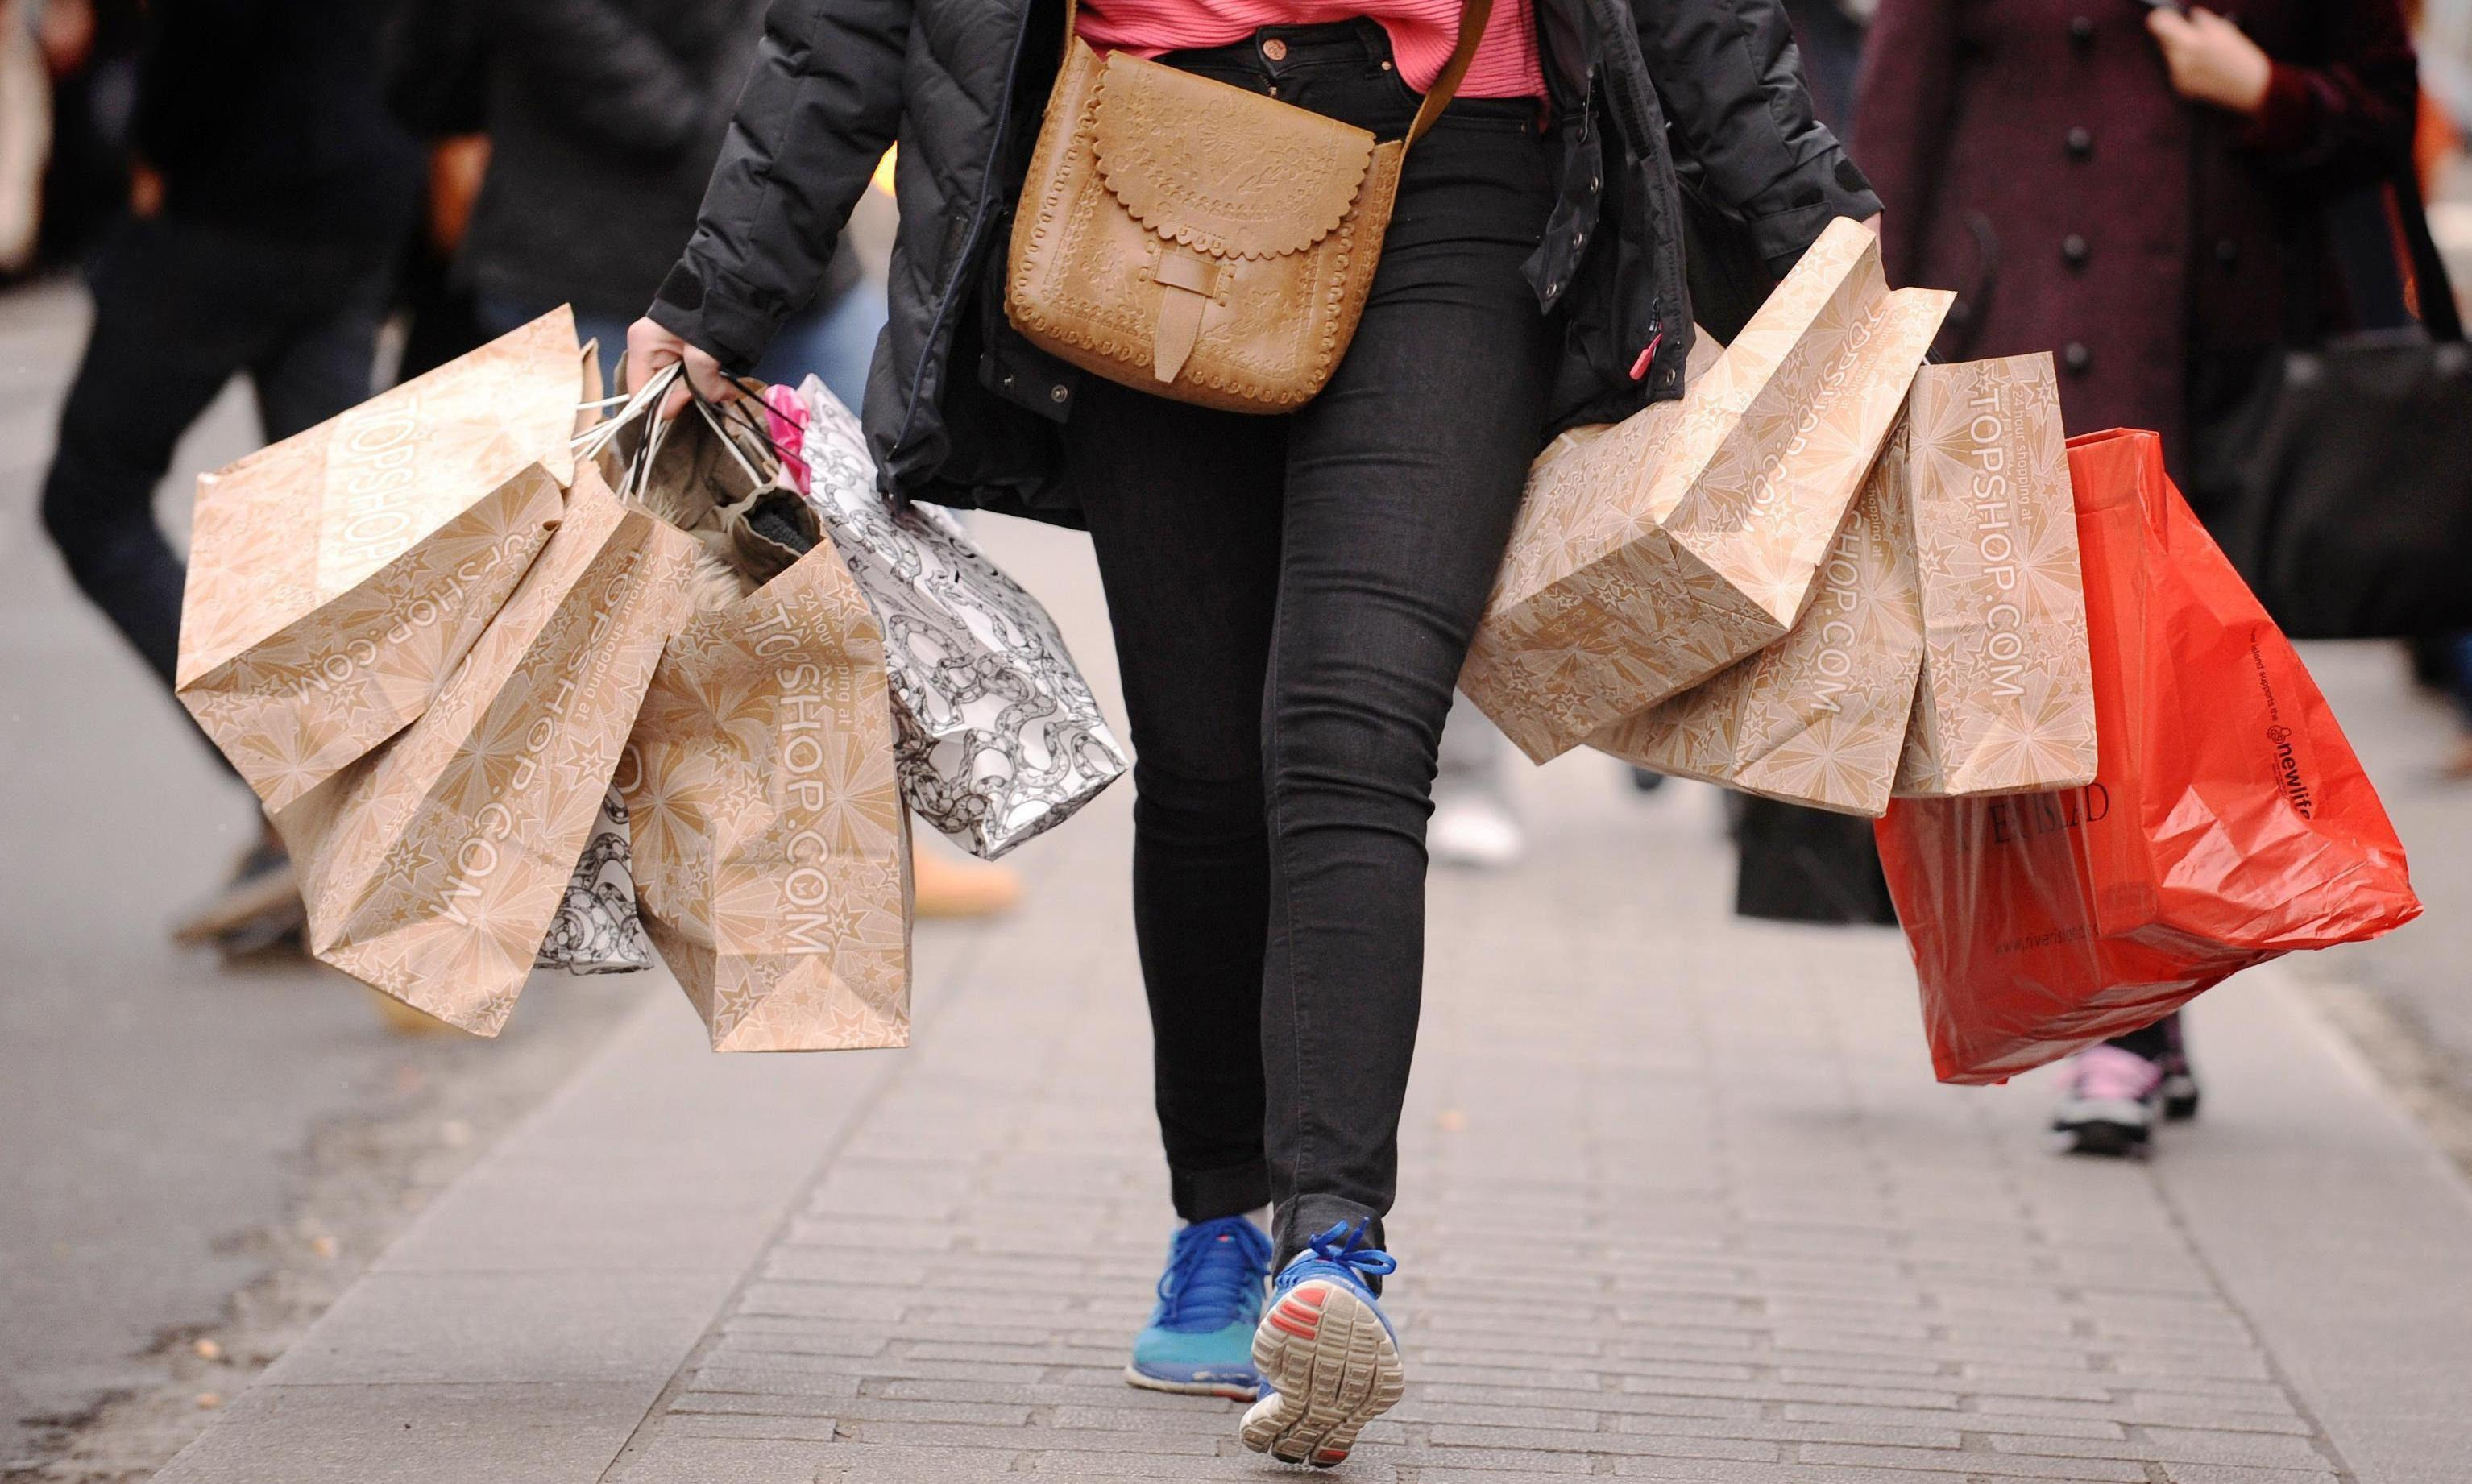 Fast fashion is eating up the planet – and this feeble government enables it